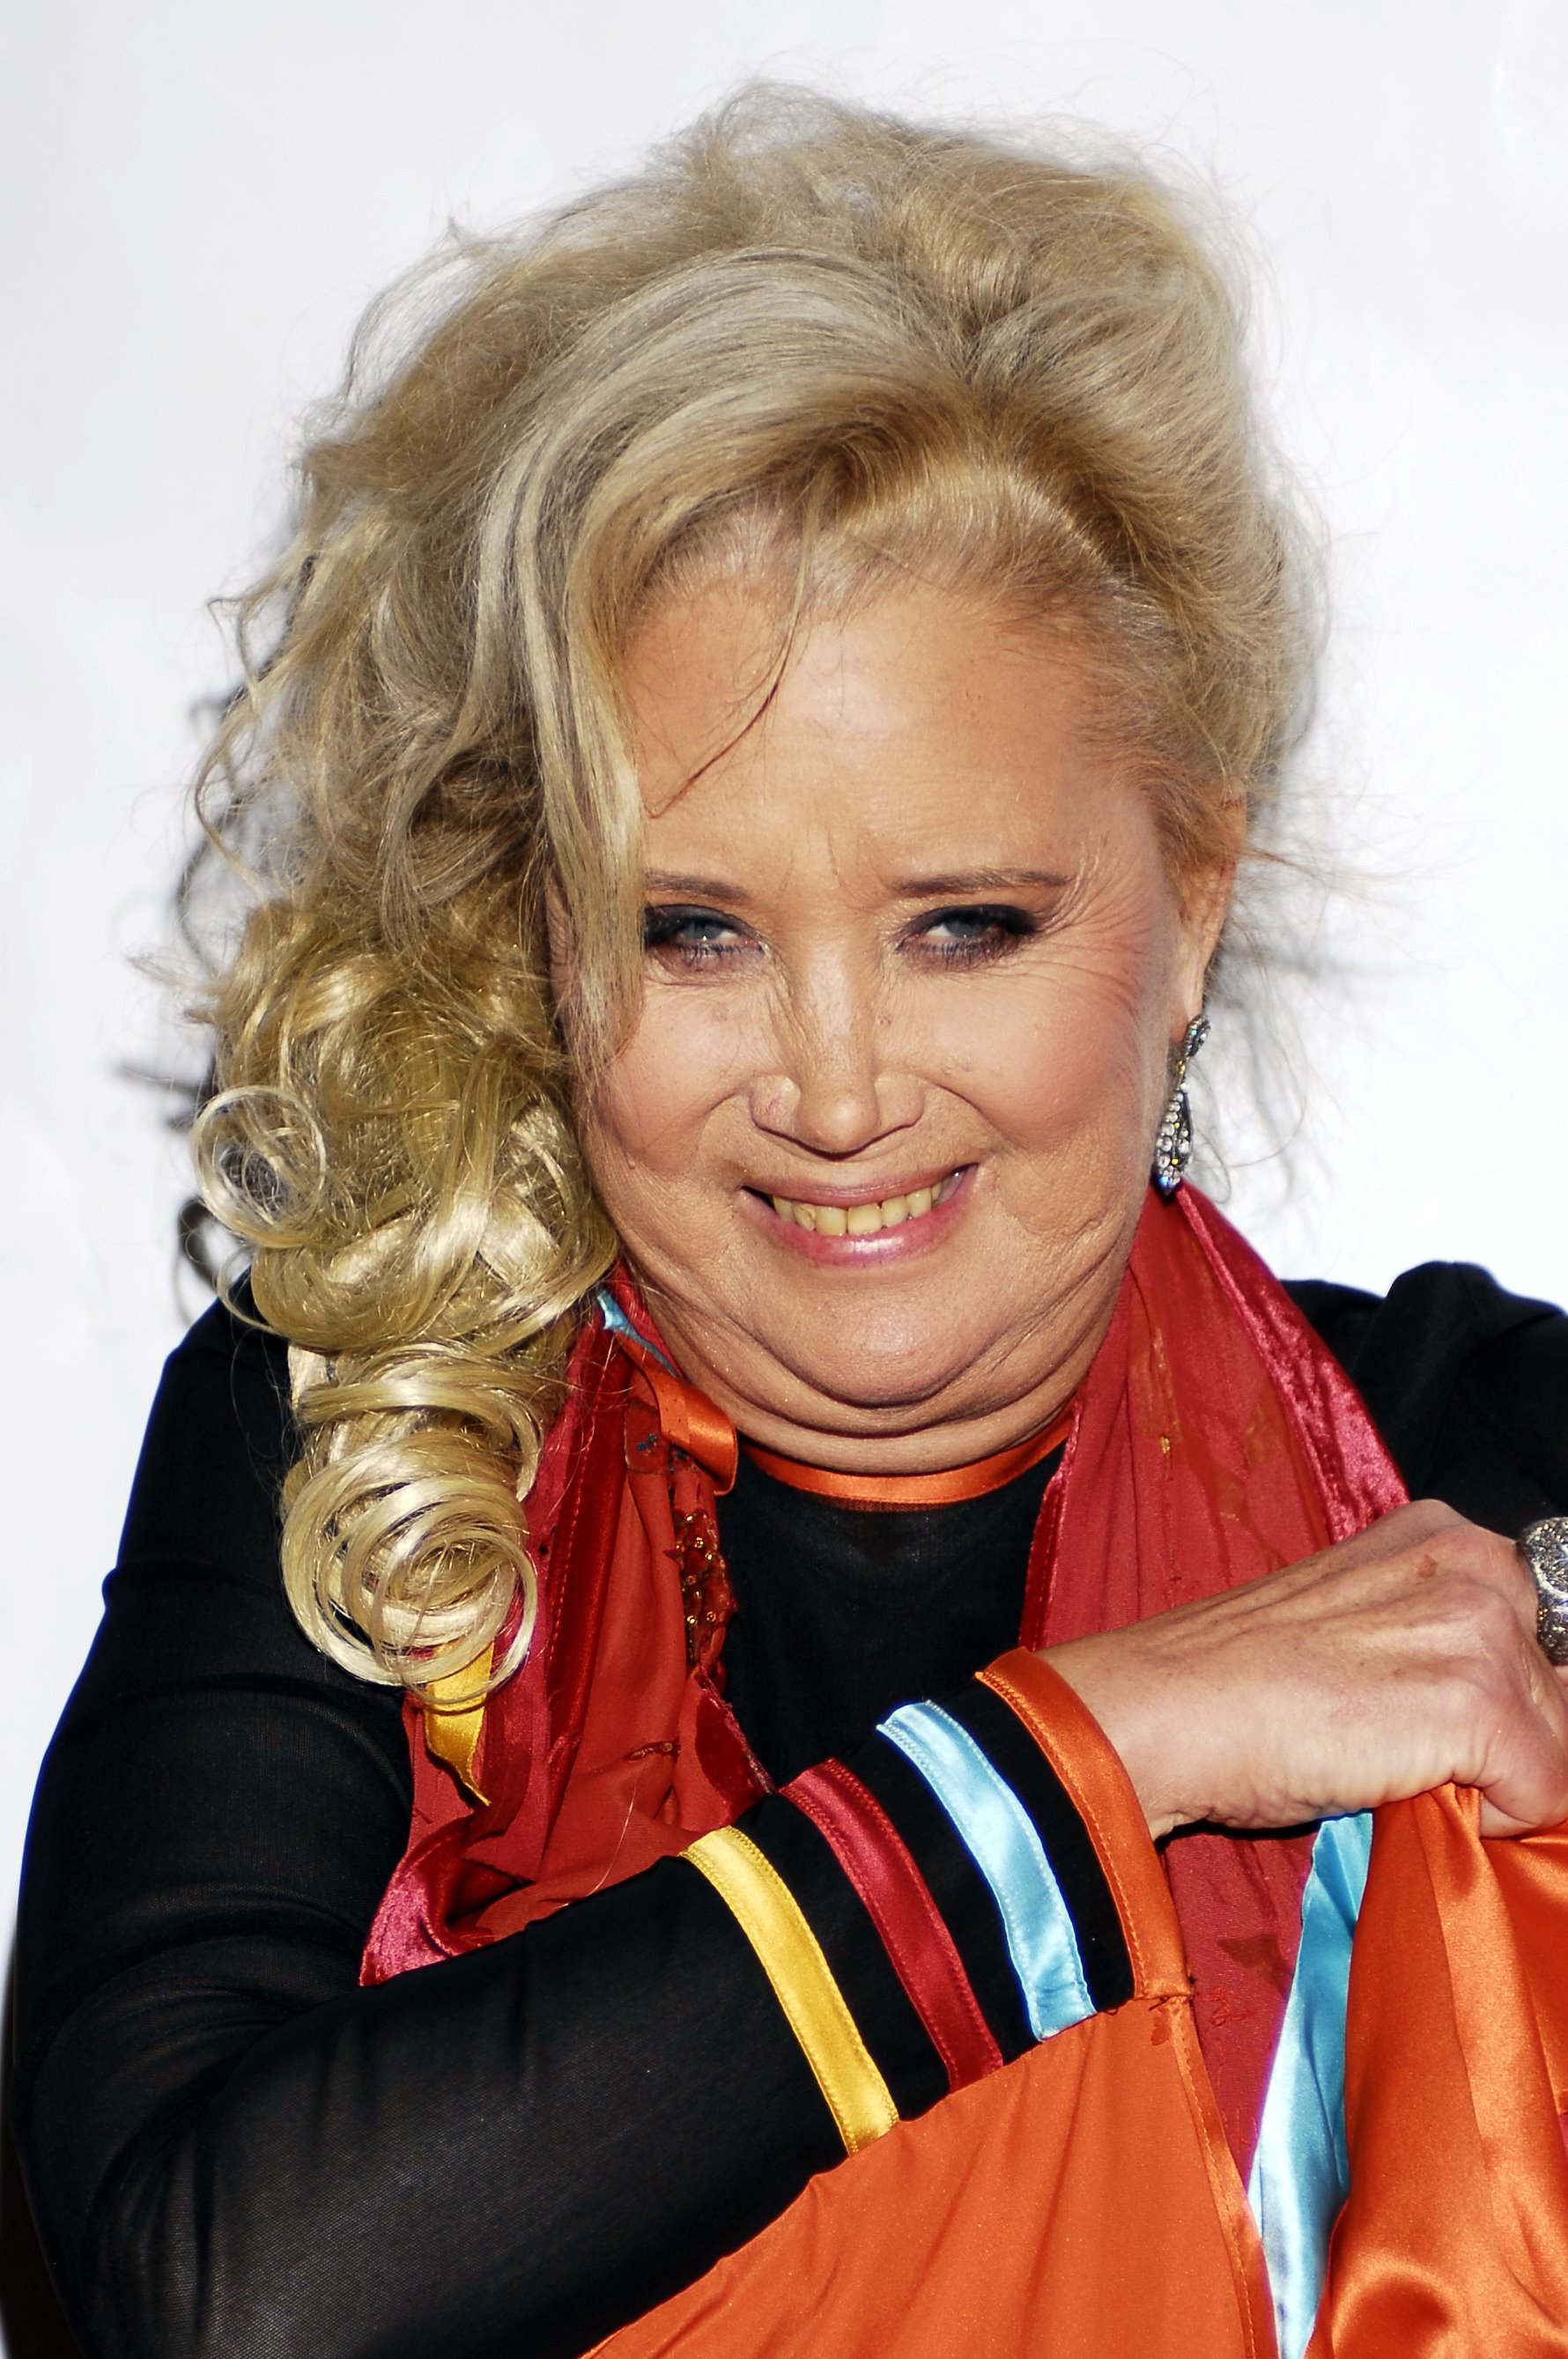 Forum on this topic: Alena Podloznaya RUS, sally-kirkland/